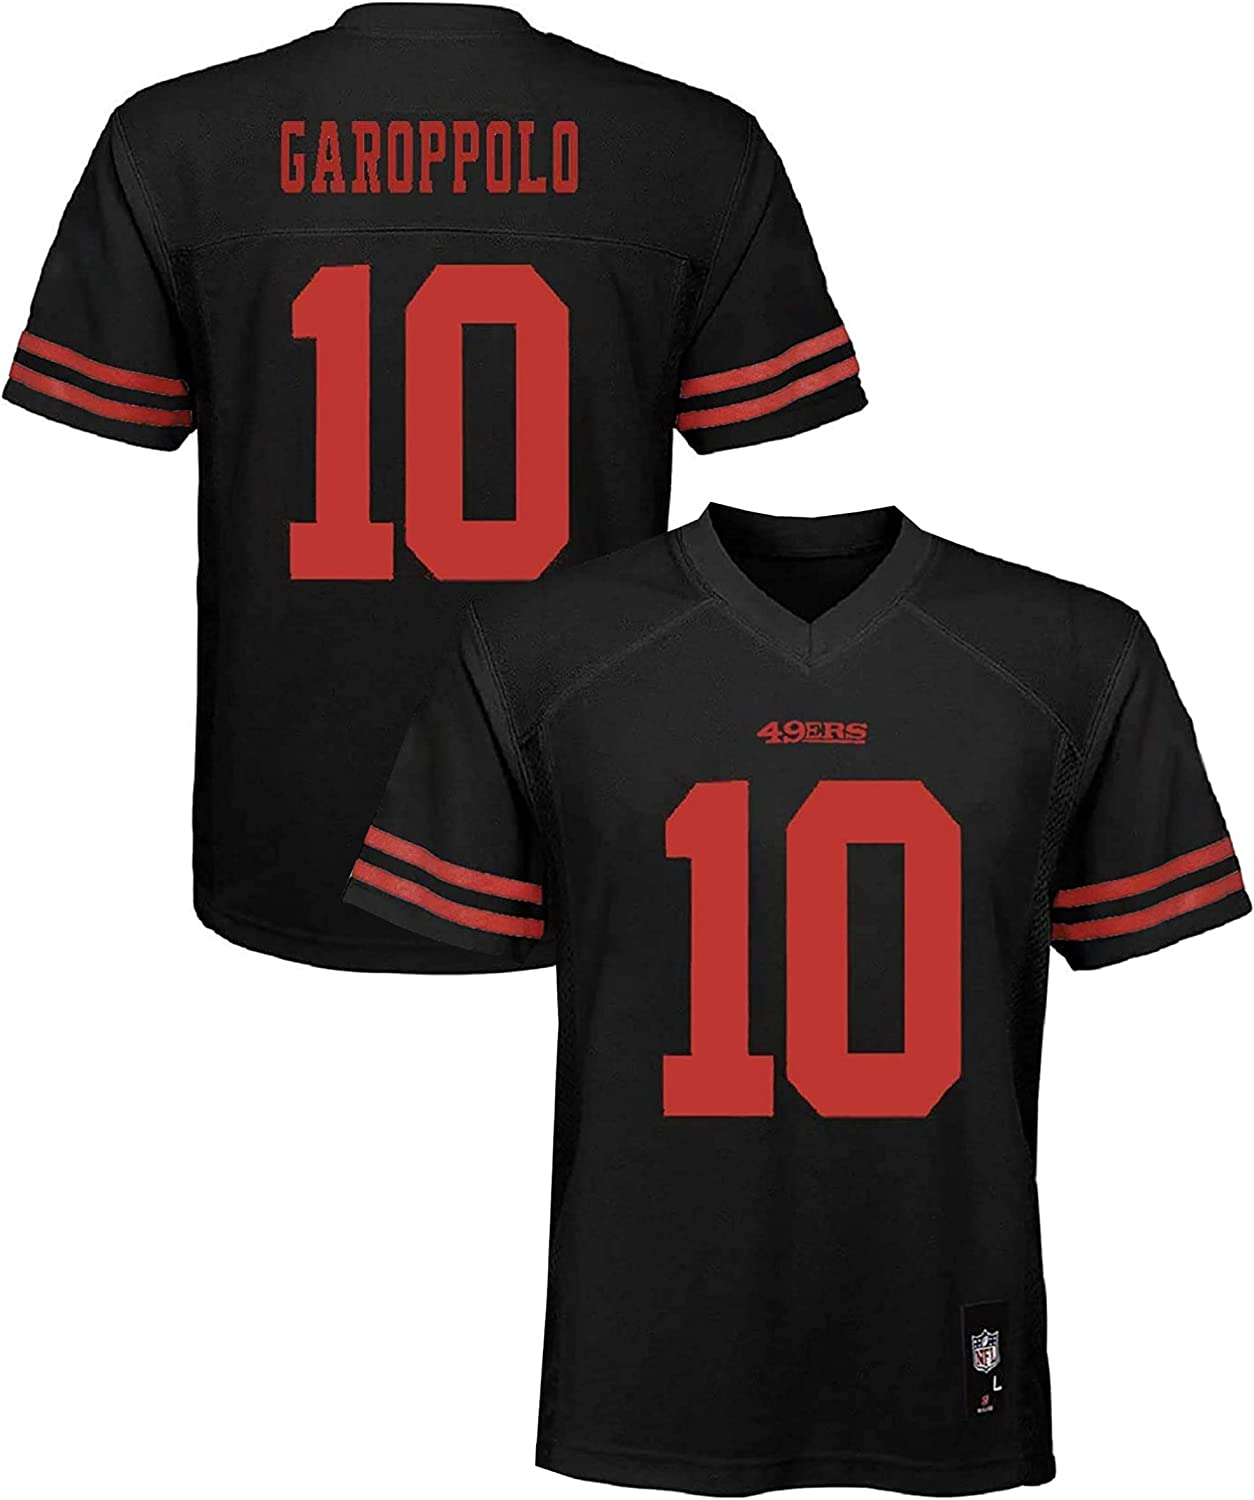 Mens Embroidery Rugby Jerseys Sport T-Shirt Training Top Quick Drying Shirt,Red,S L-SLWI San Francisco 49Ers 10#Jimmy Garoppolo